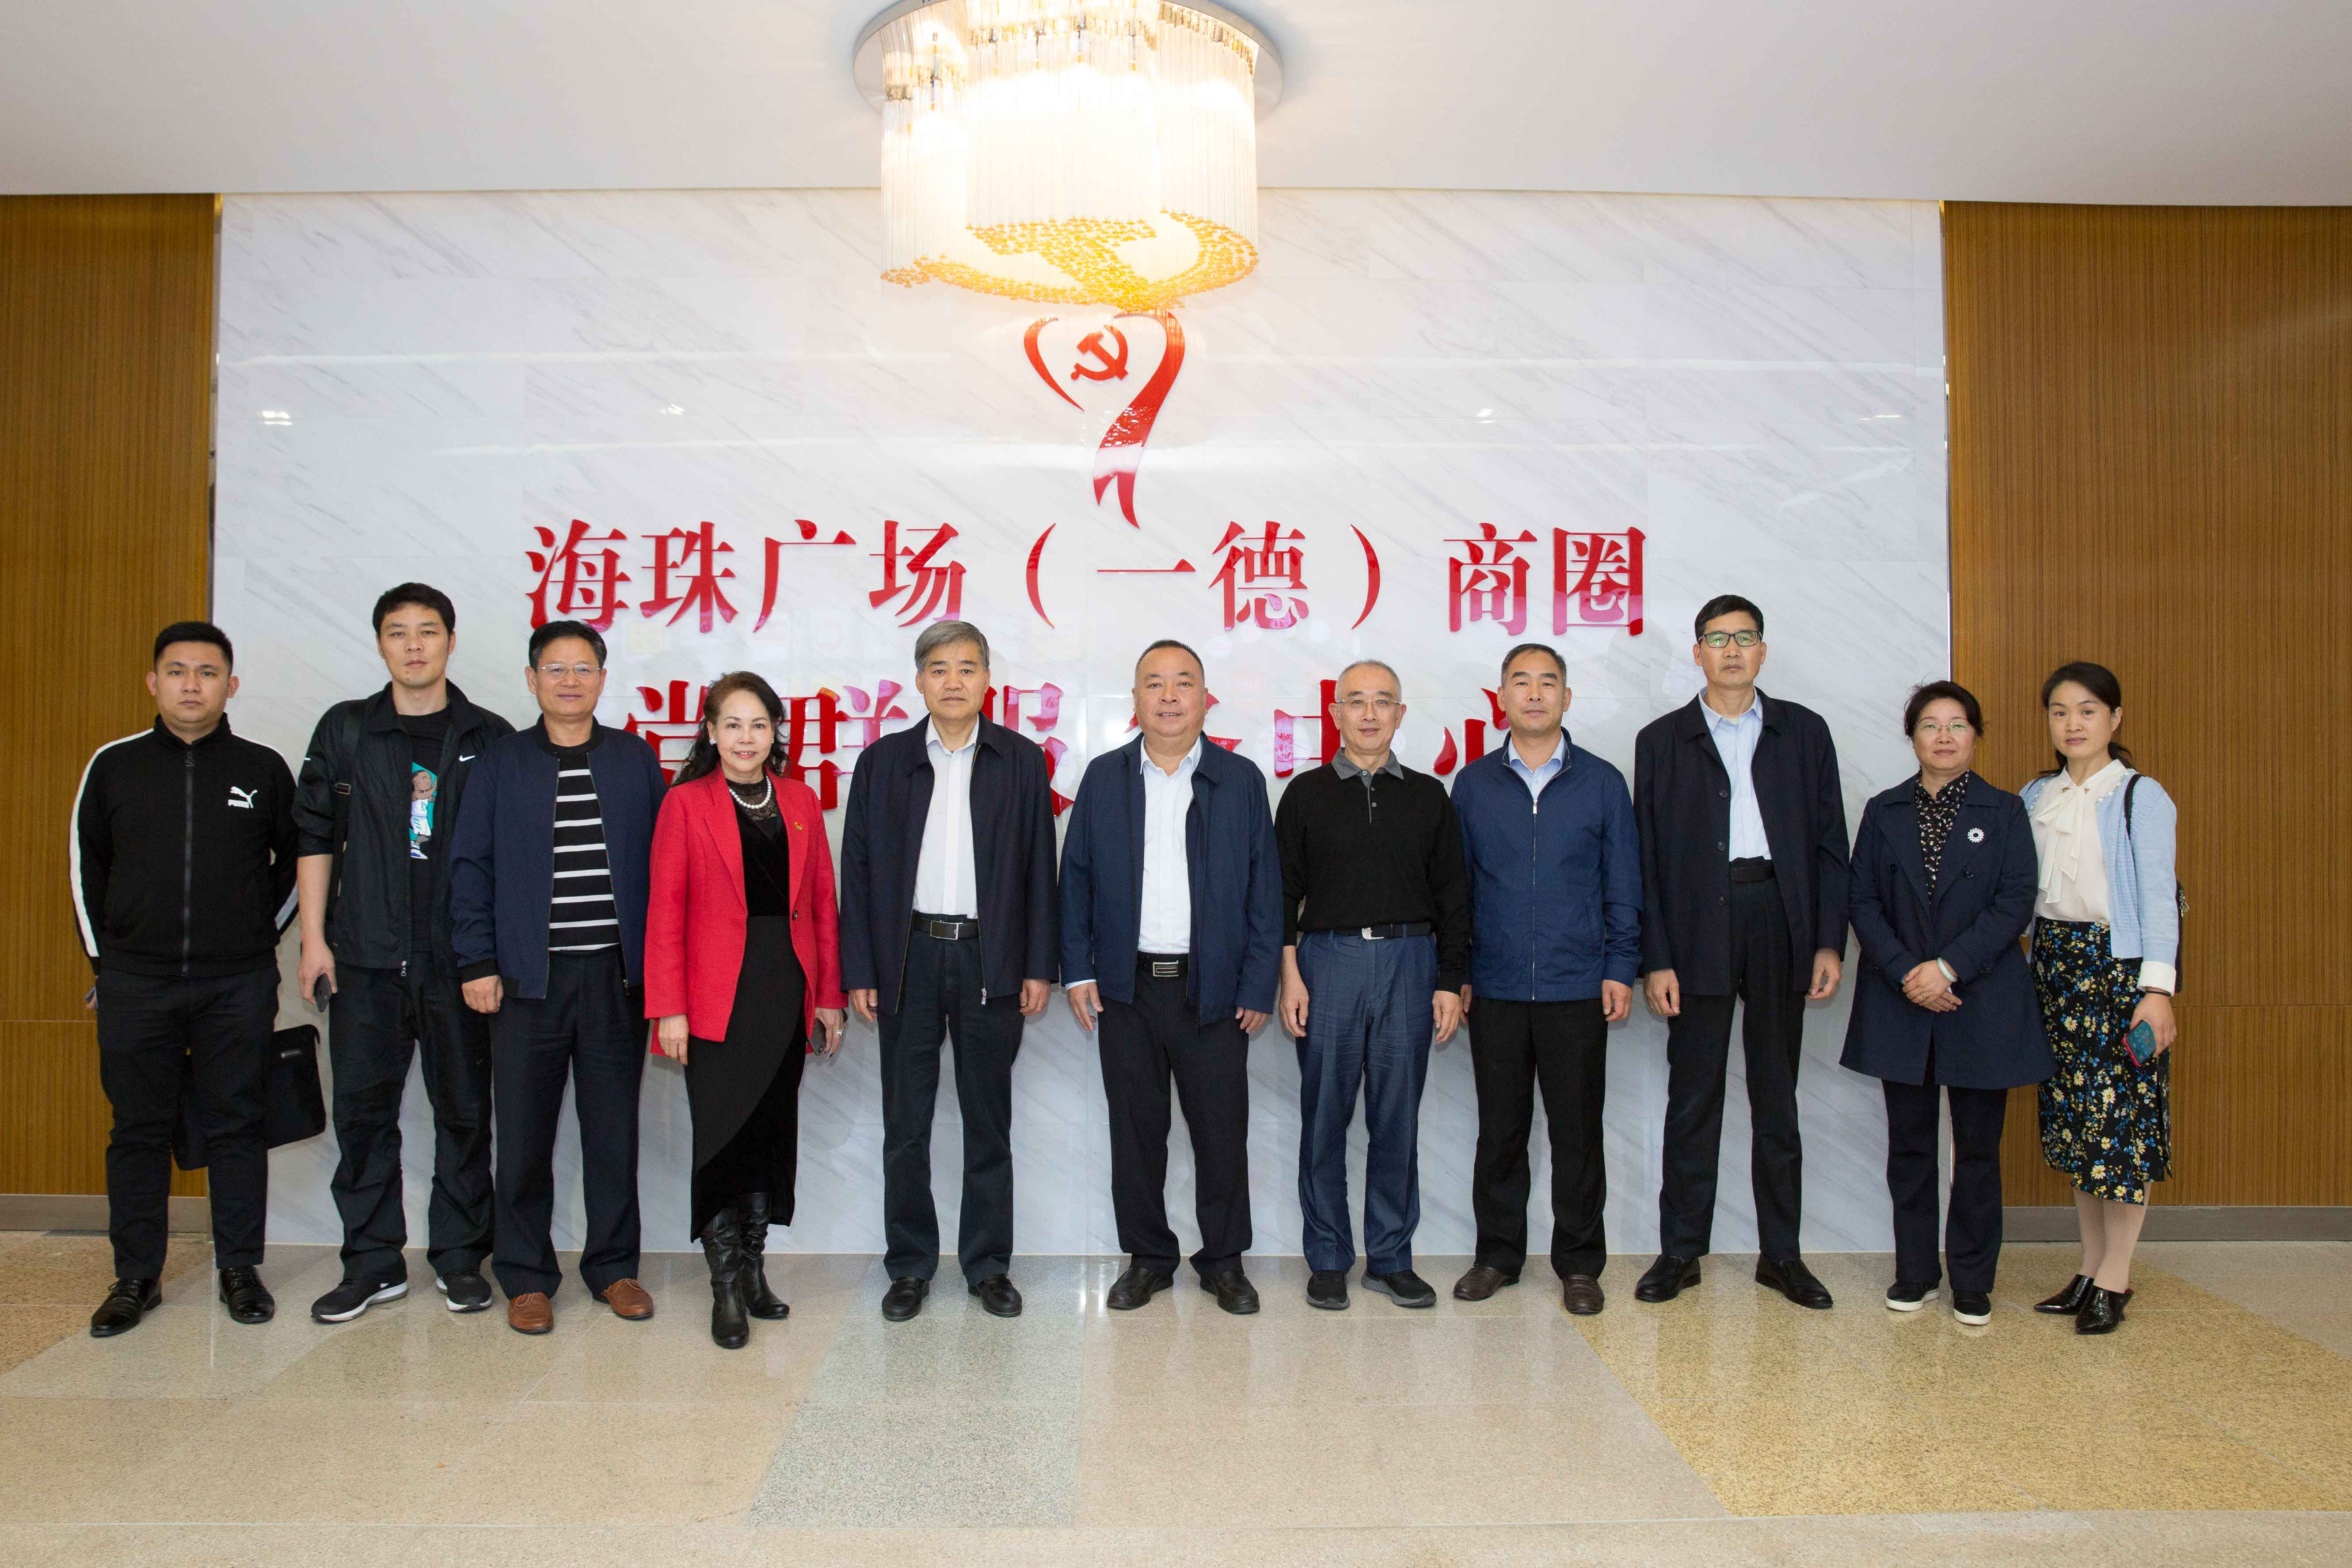 Members of the Standing Committee of the people's Congress of Luozhuang District, Linyi City, Shandong Province visit Wanling square